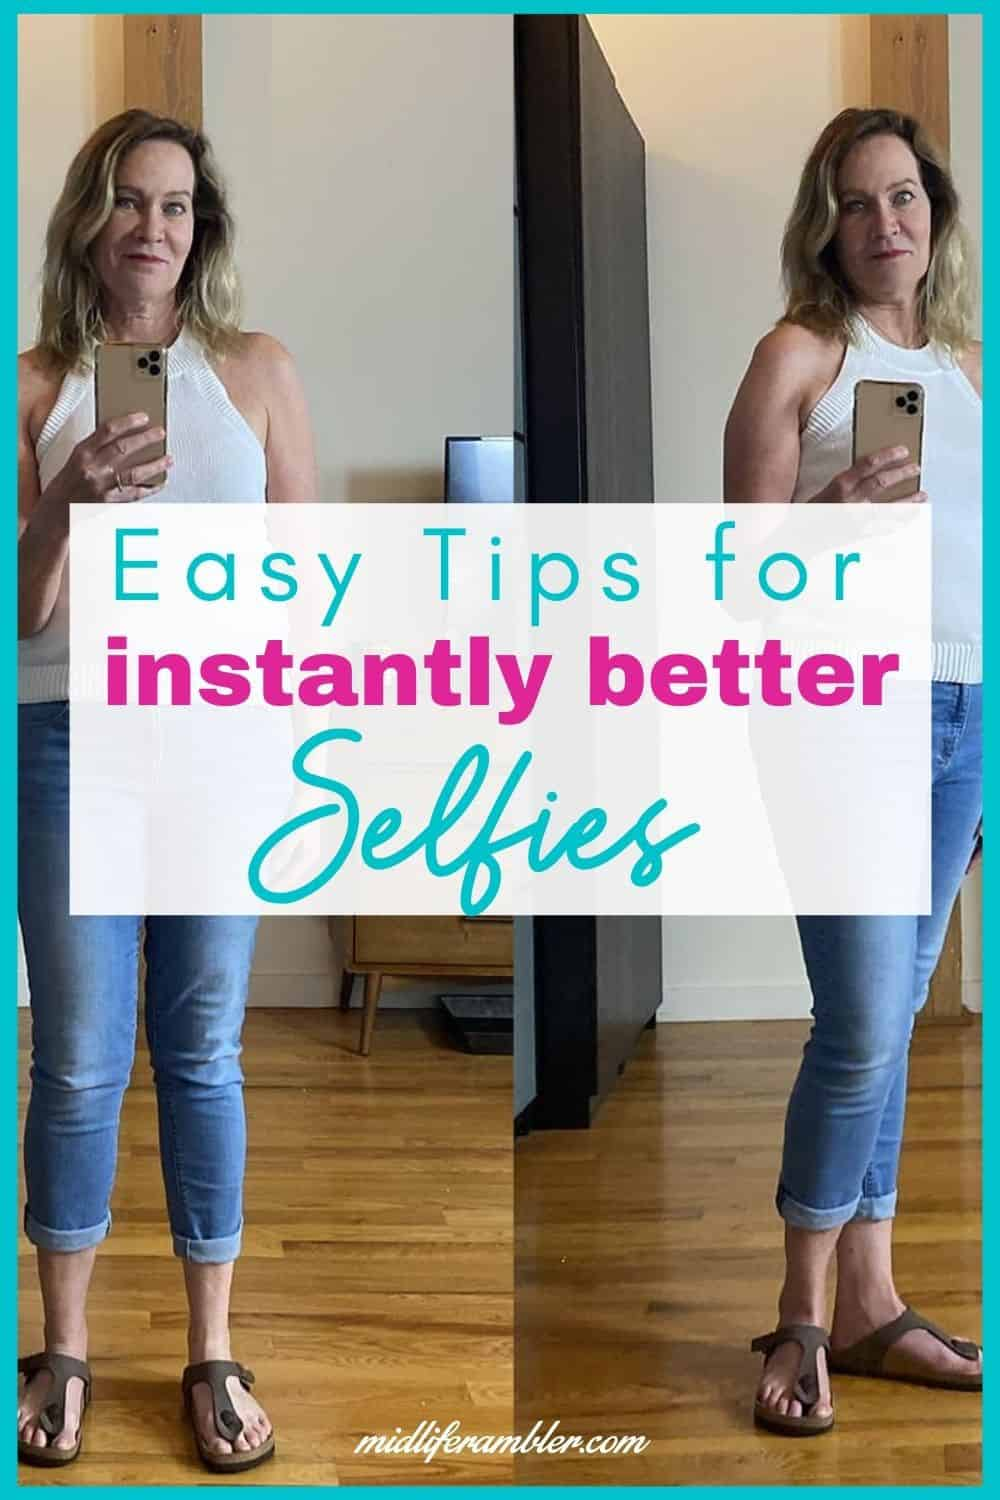 How to Take the Perfect Selfie Over 40 | Here's the secret to looking good in photos and taking the best selfies. How to angle your head to avoid a double chin, how to avoid that crazy eye look, how to pose to flatter your body and the best lighting for Instagram worthy photos. Plus simple changes you can make with apps on your phone to take things to the next level! #instagram #phototips #selfietips #midliferambler